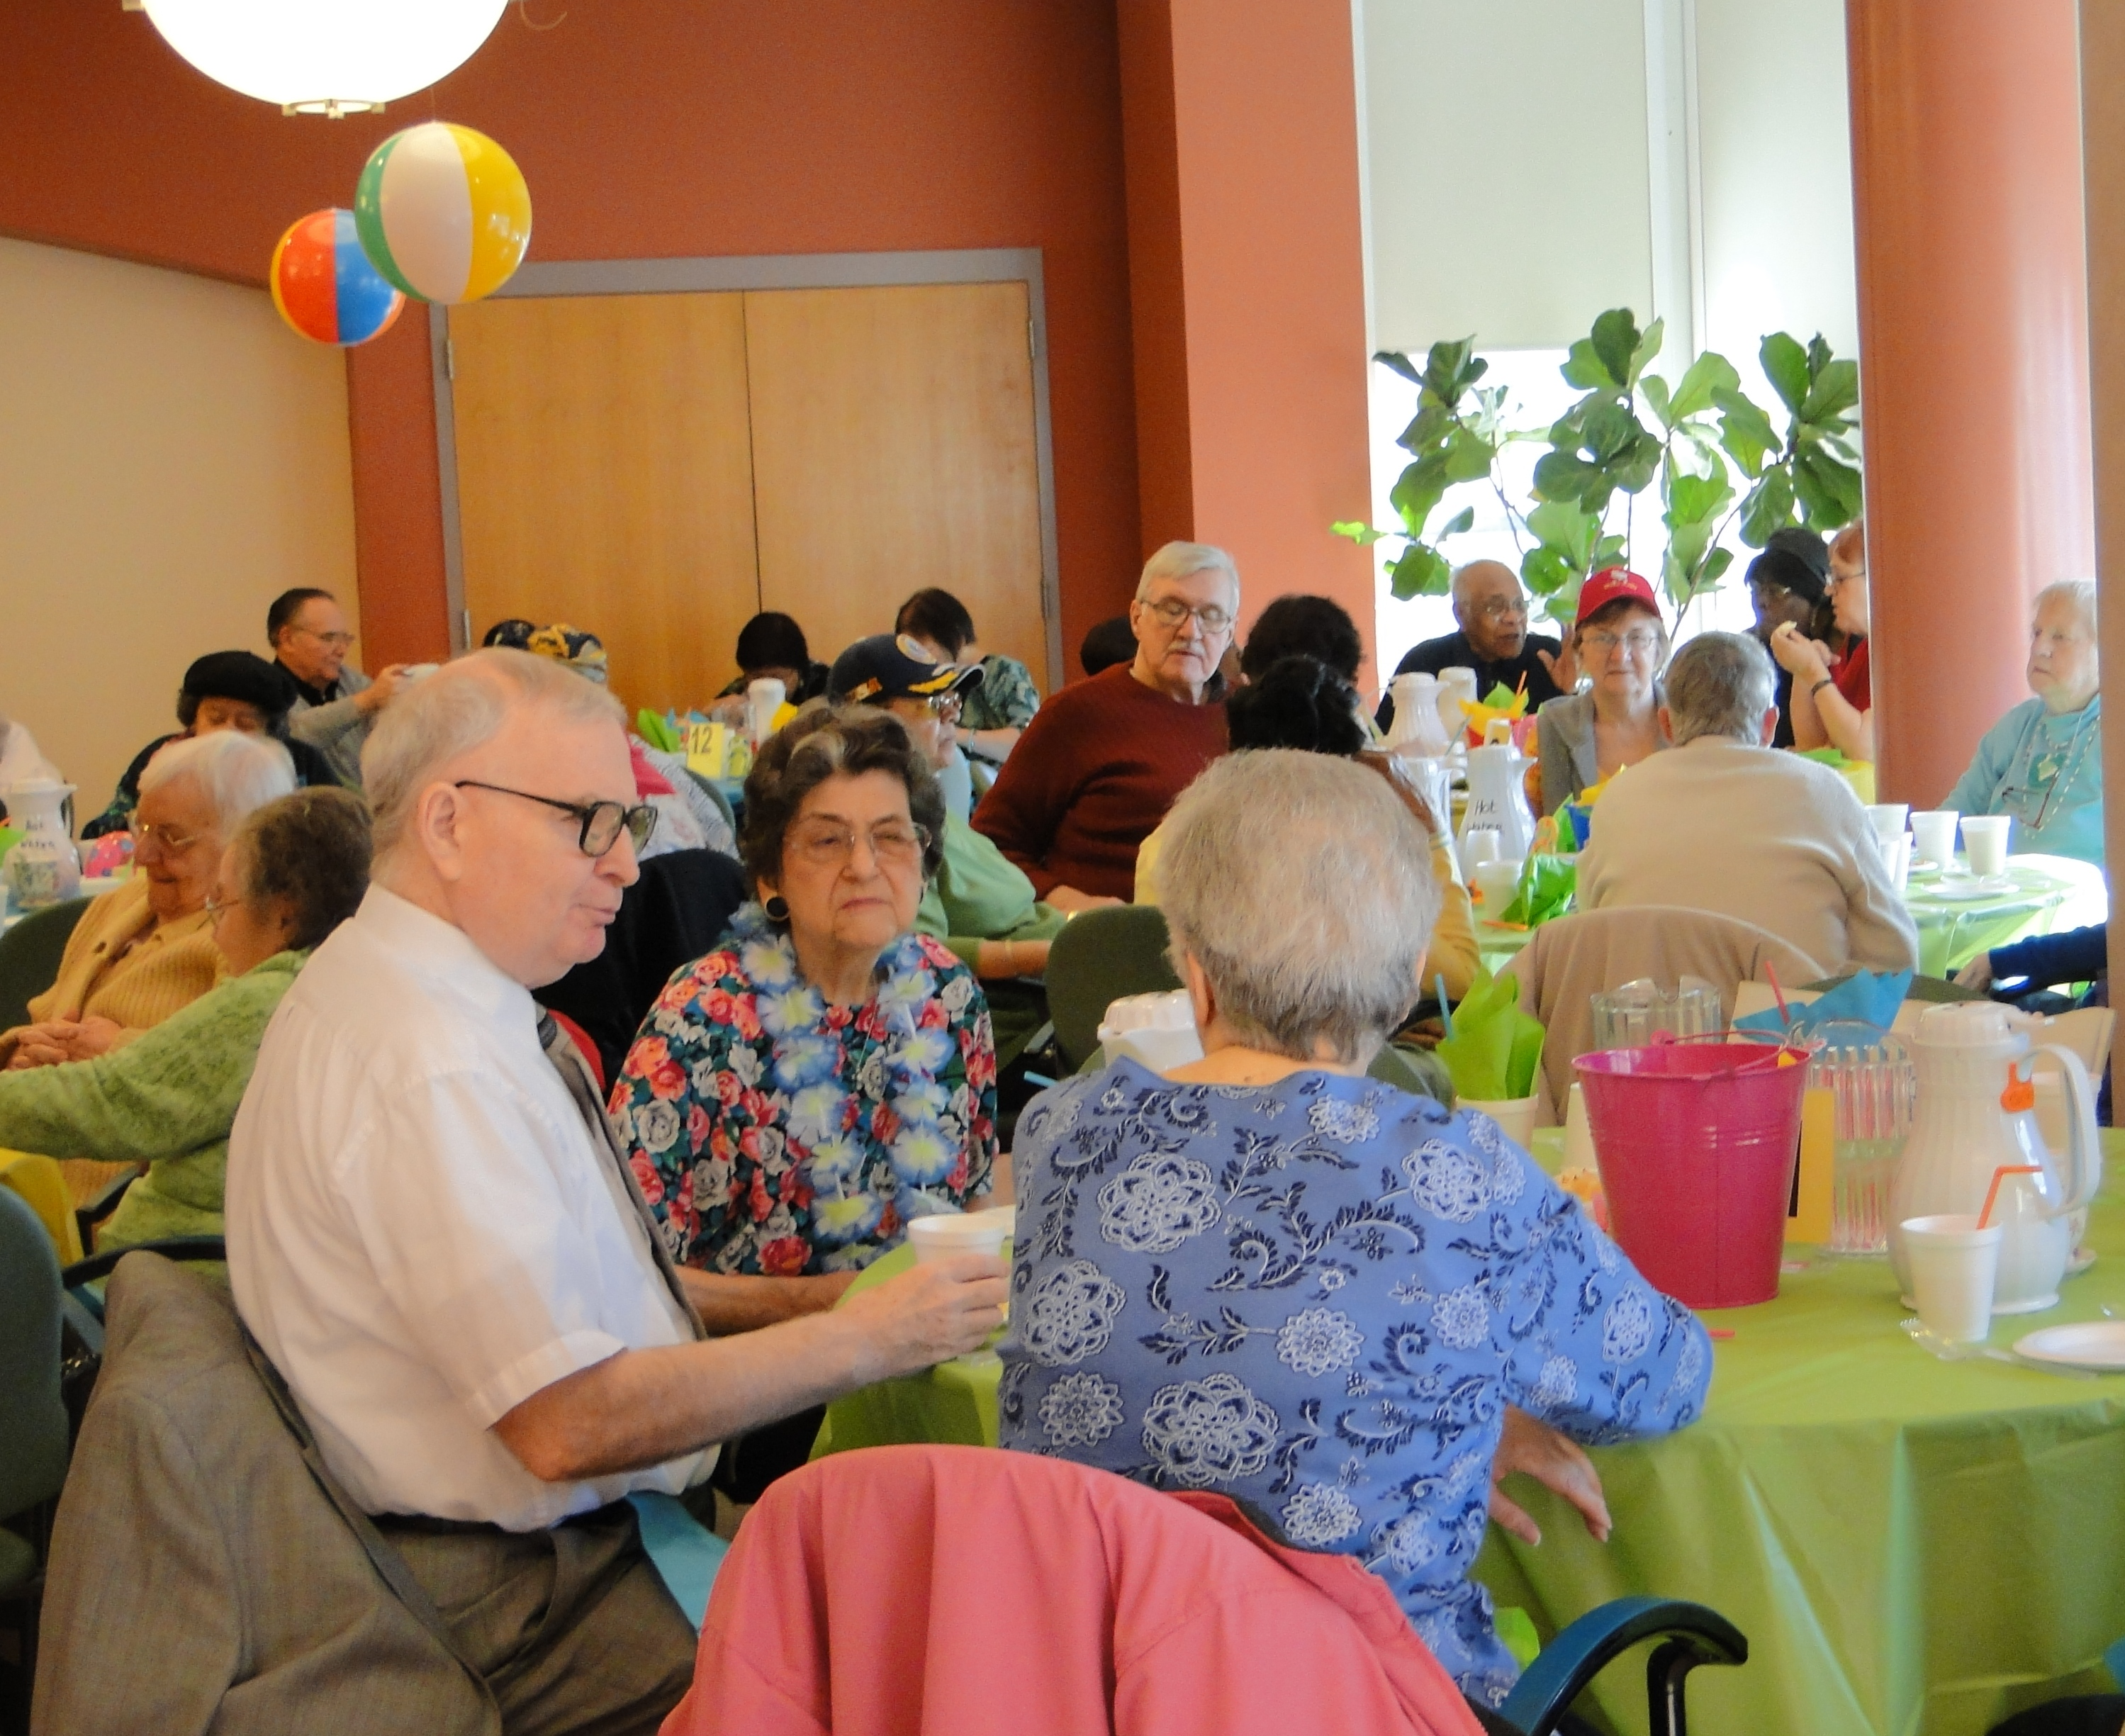 Senior Center Party photo